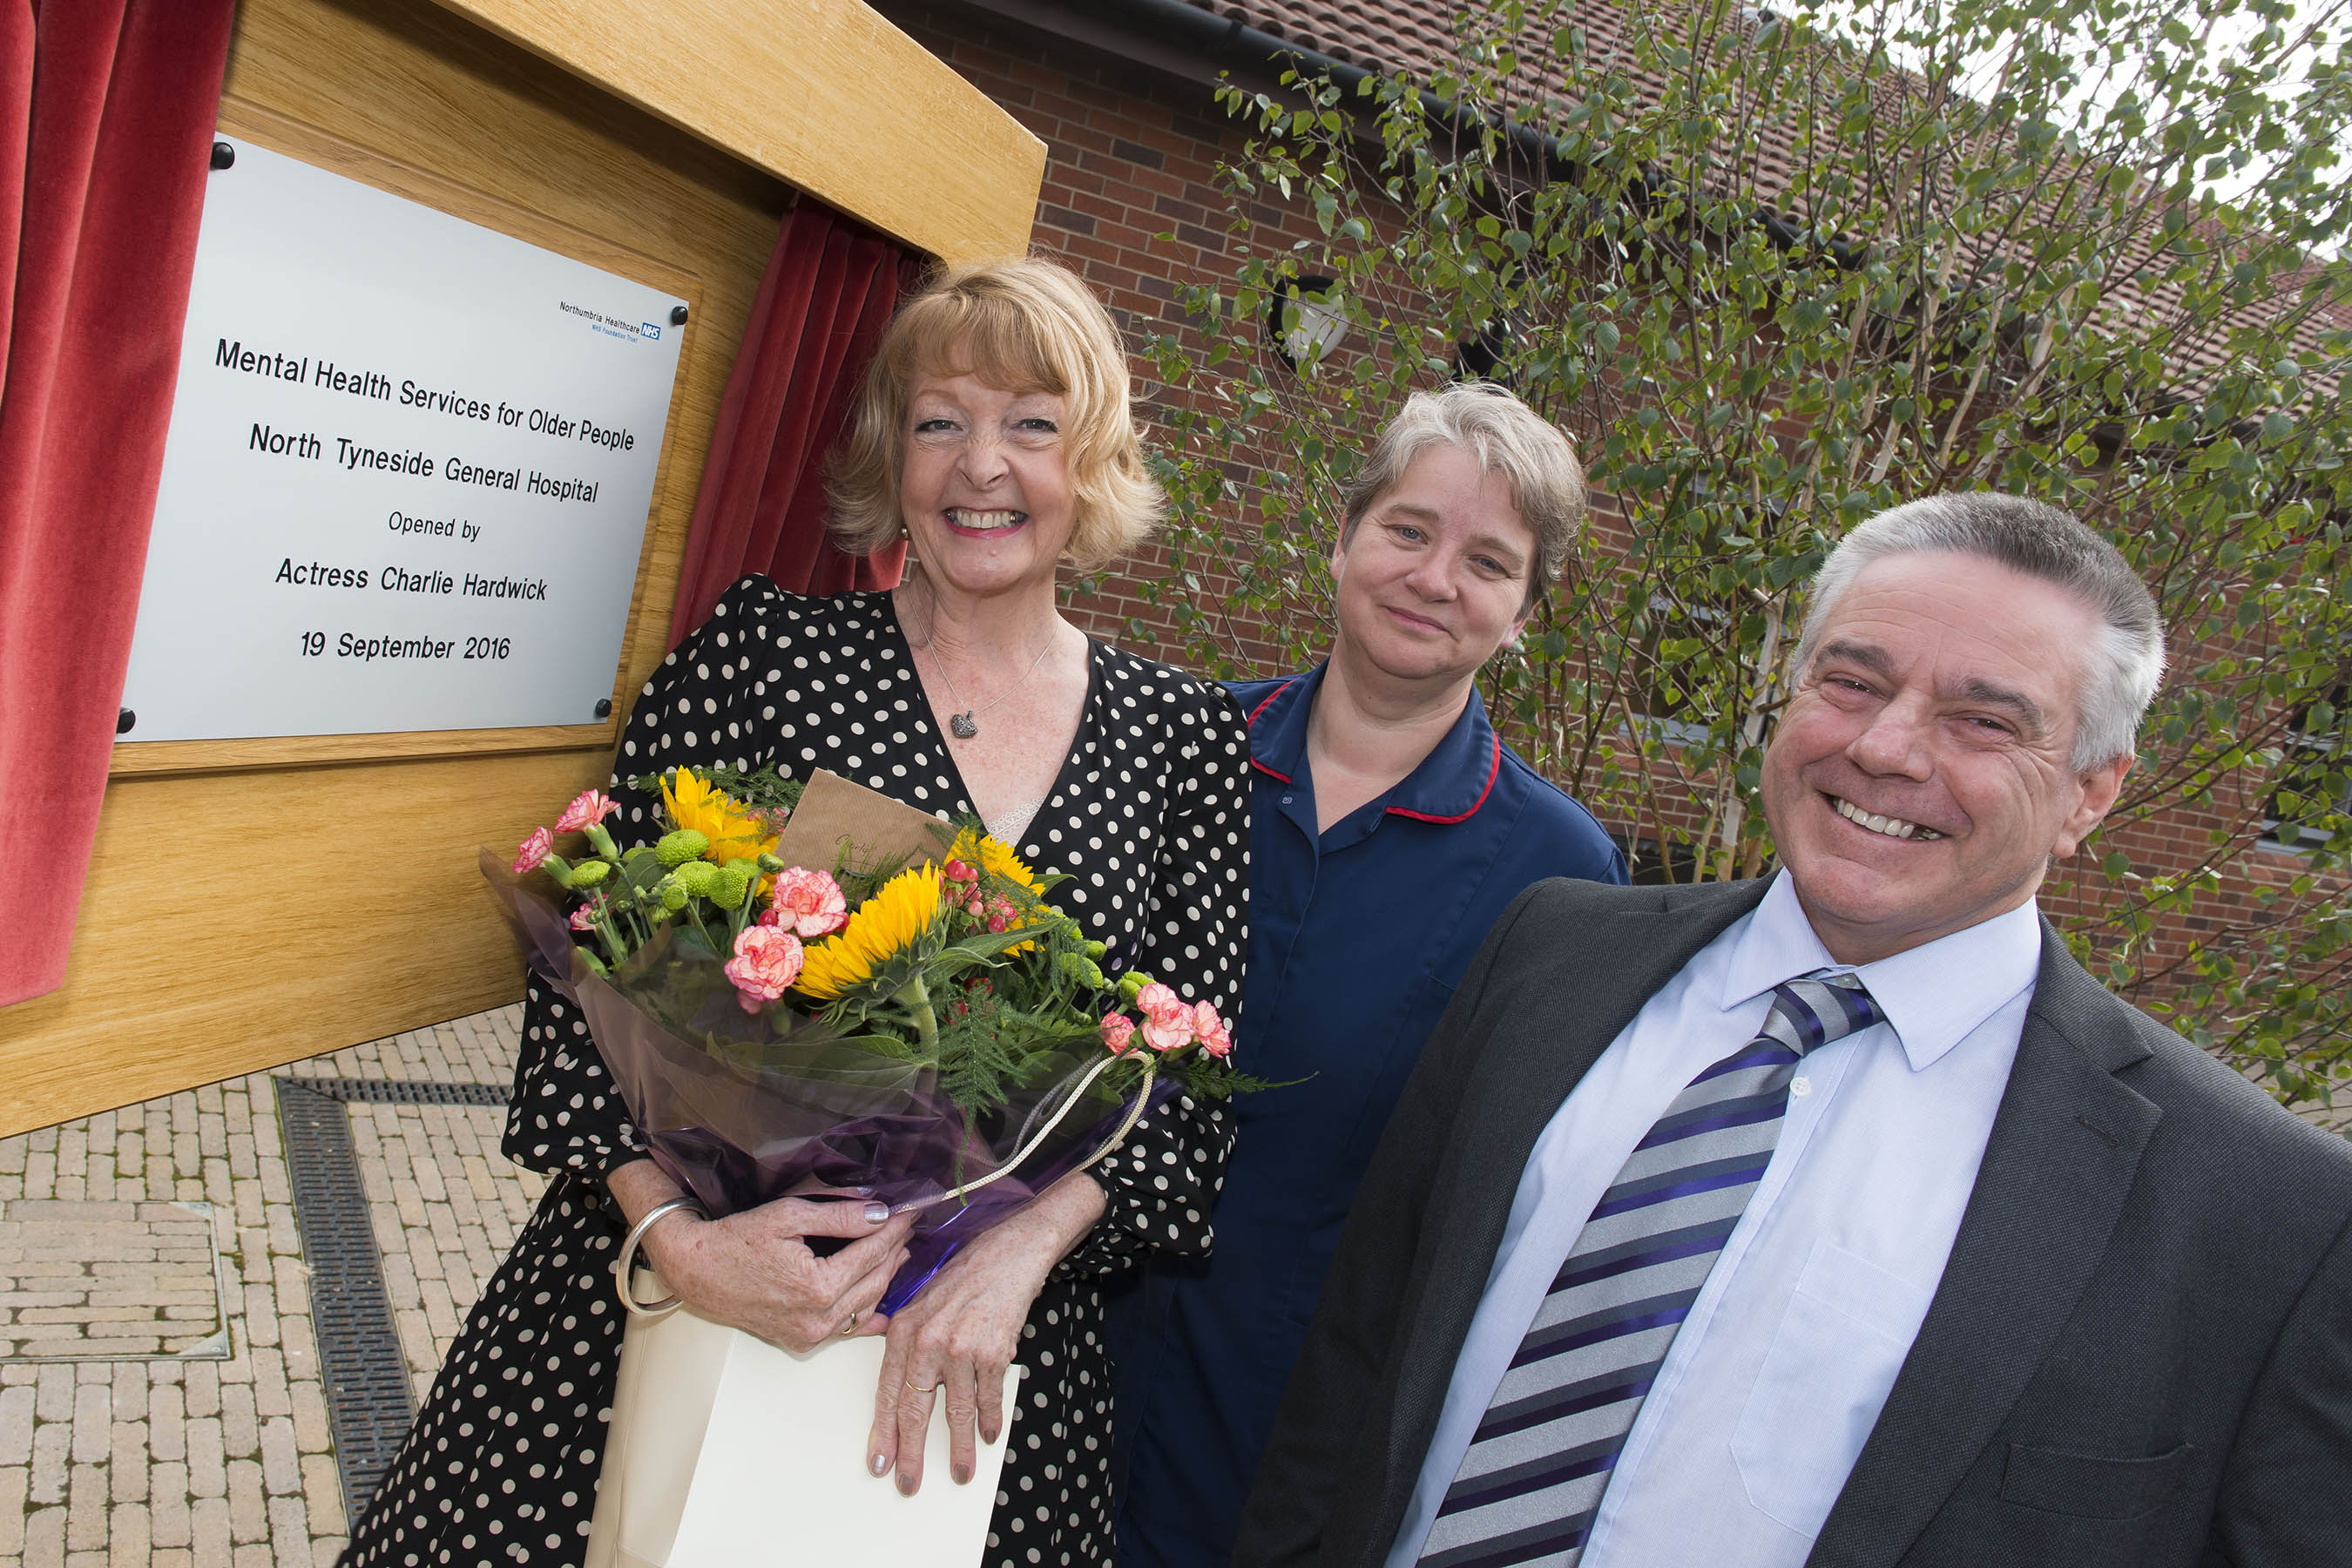 Dementia friend Charlie opens new £6million facility at North Tyneside hospital